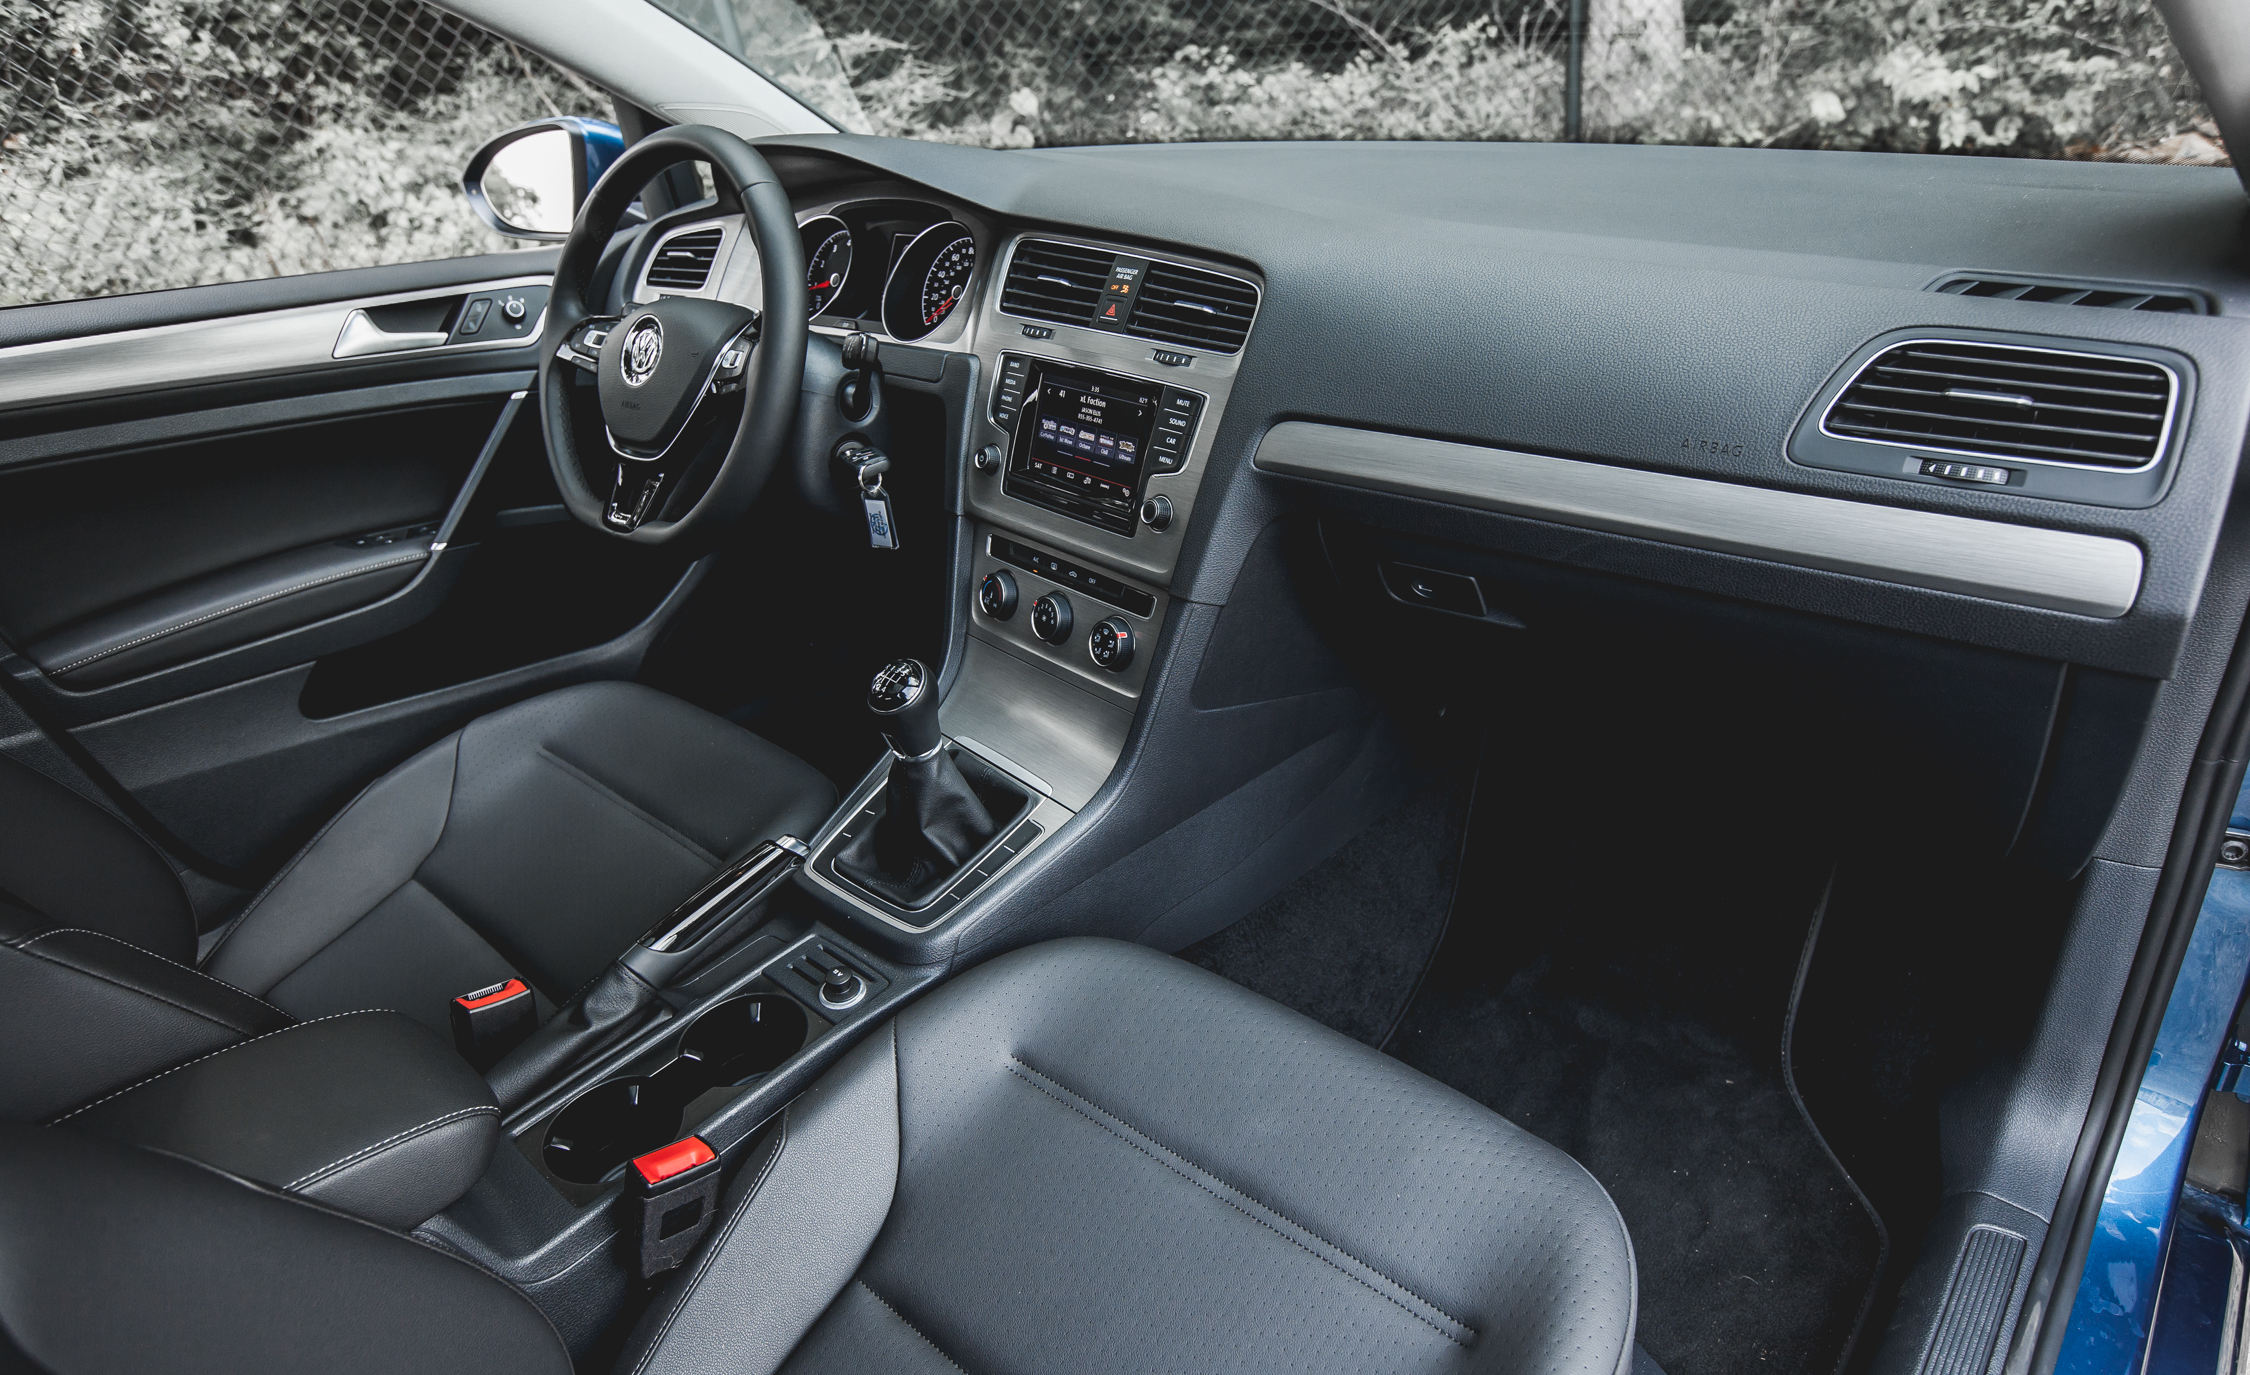 2015 Volkswagen Golf TSI Interior Dashboard